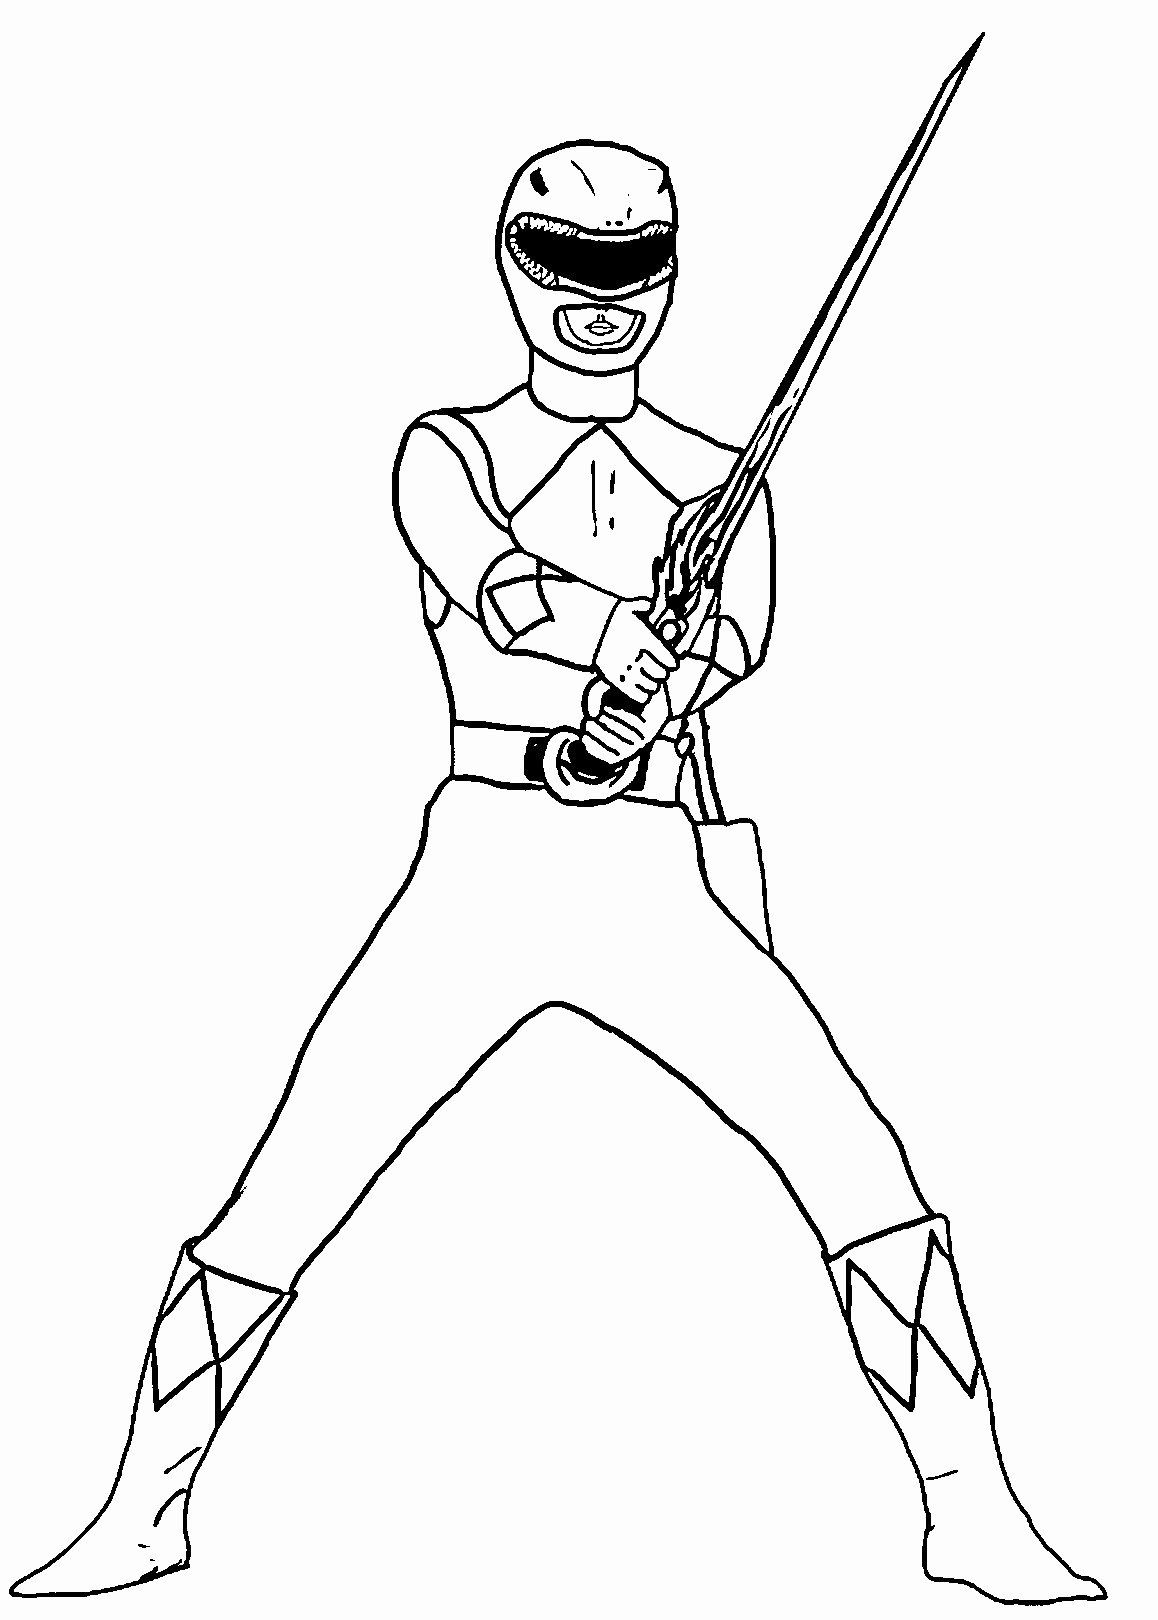 Power Ranger Coloring Book Luxury Coloring Pages Stunning